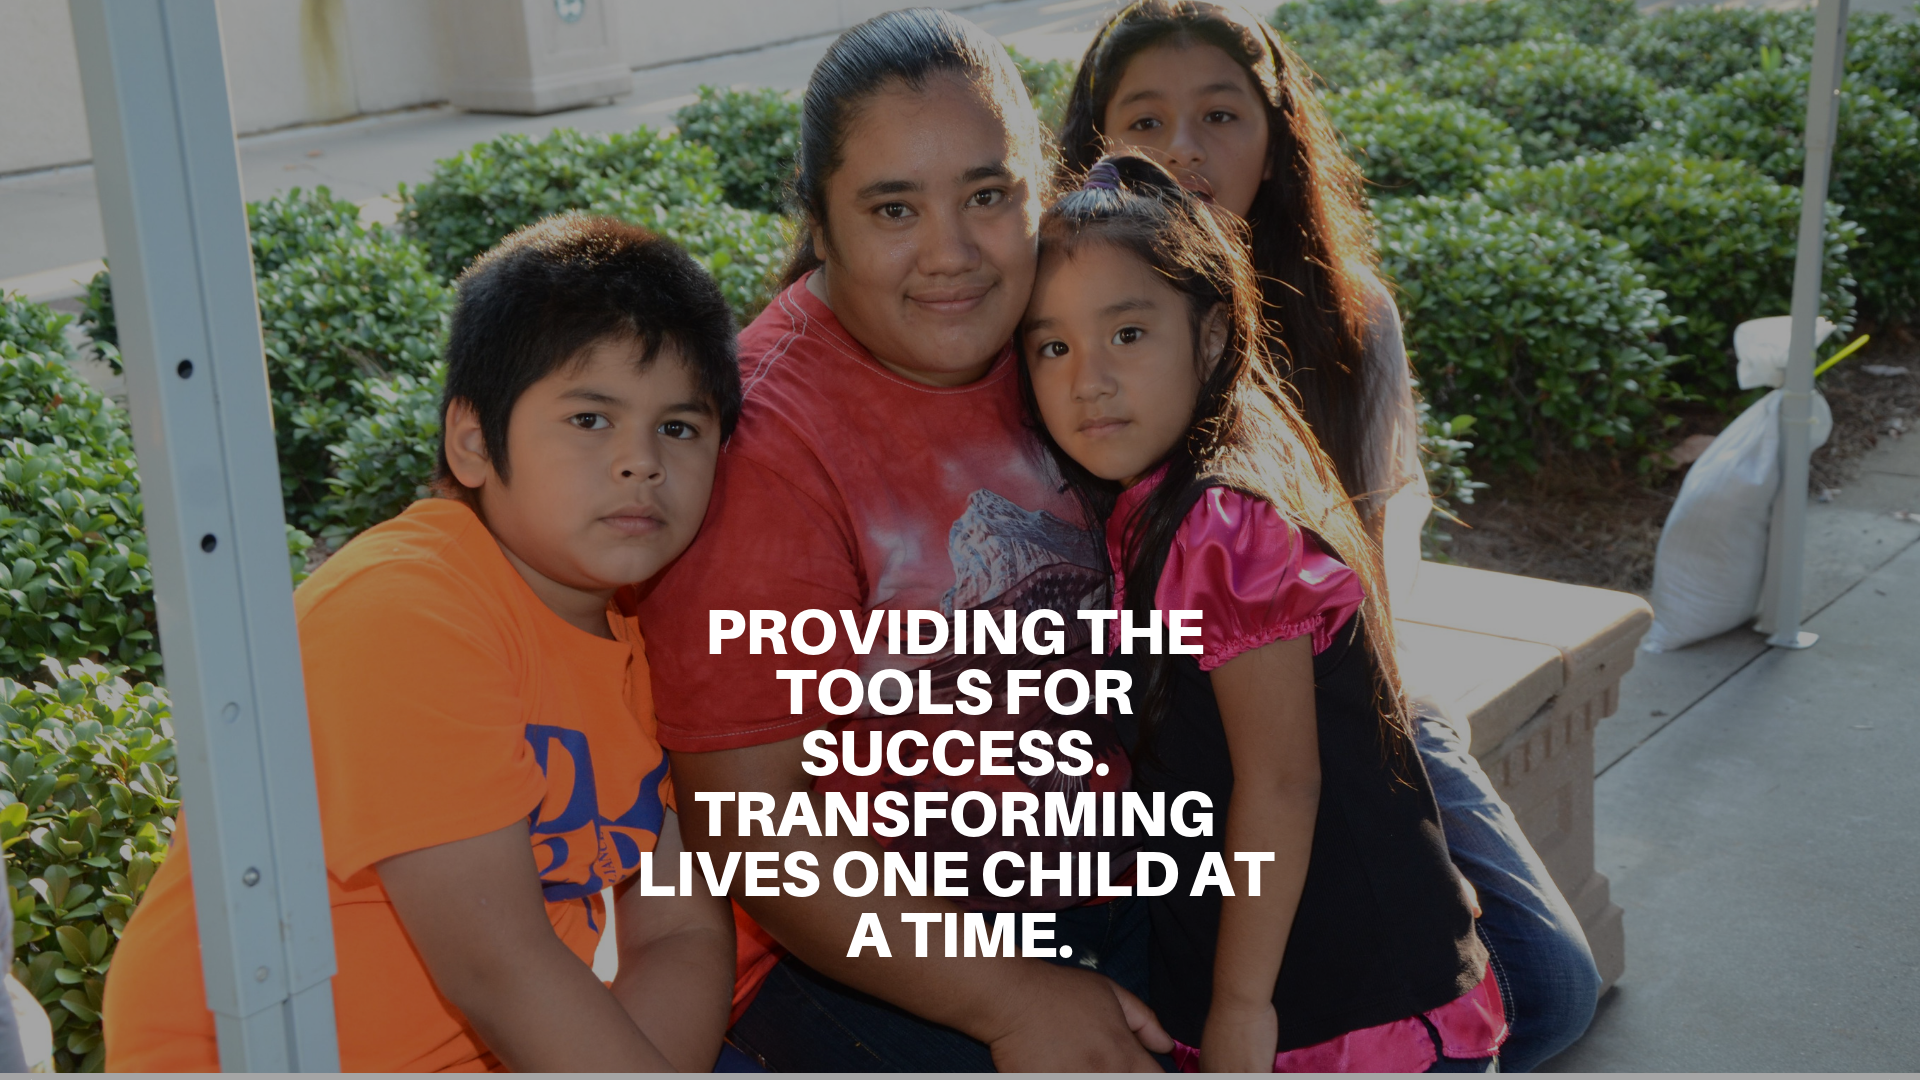 Providing tools/Transforming Lives - Header